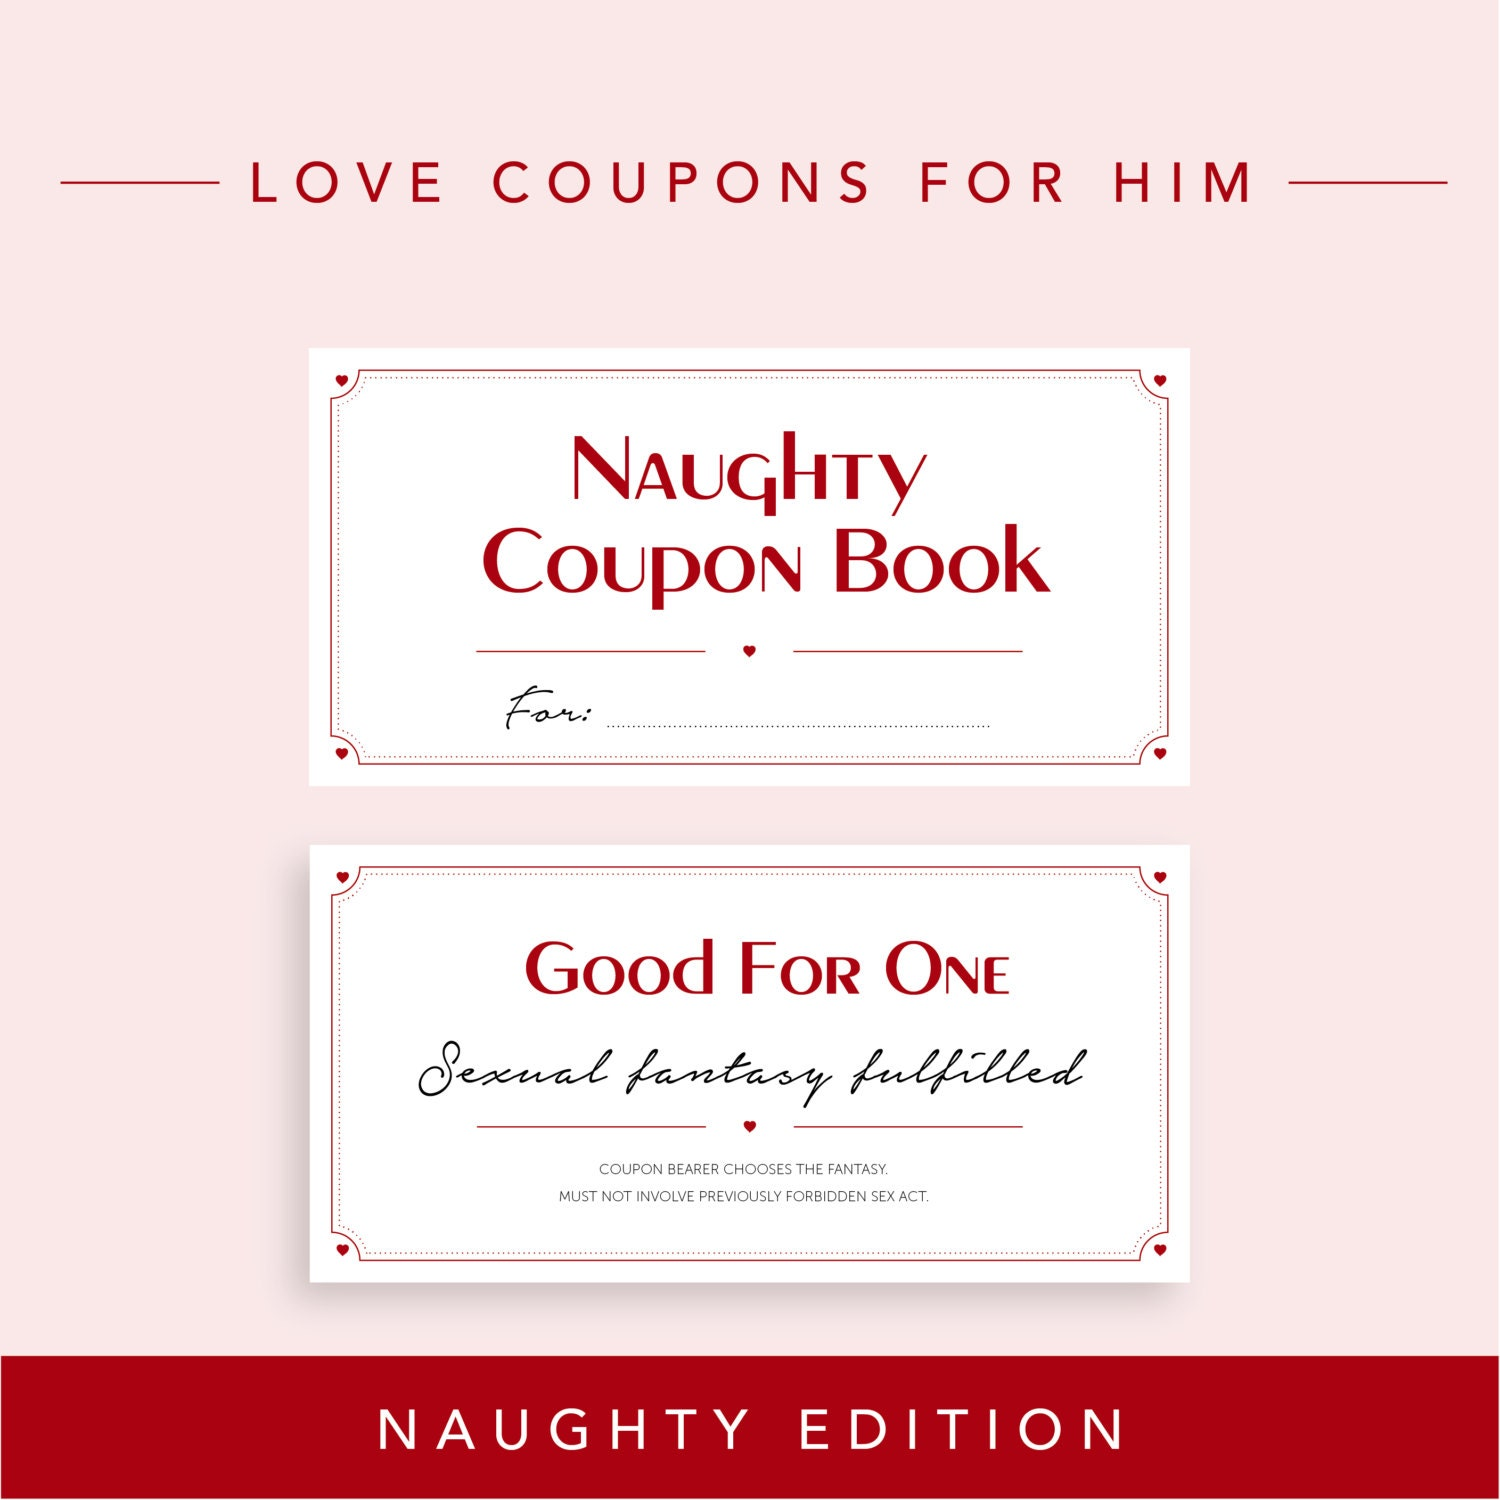 Naughty edition love coupons for boyfriend valentine 39 s for Coupon book template for husband